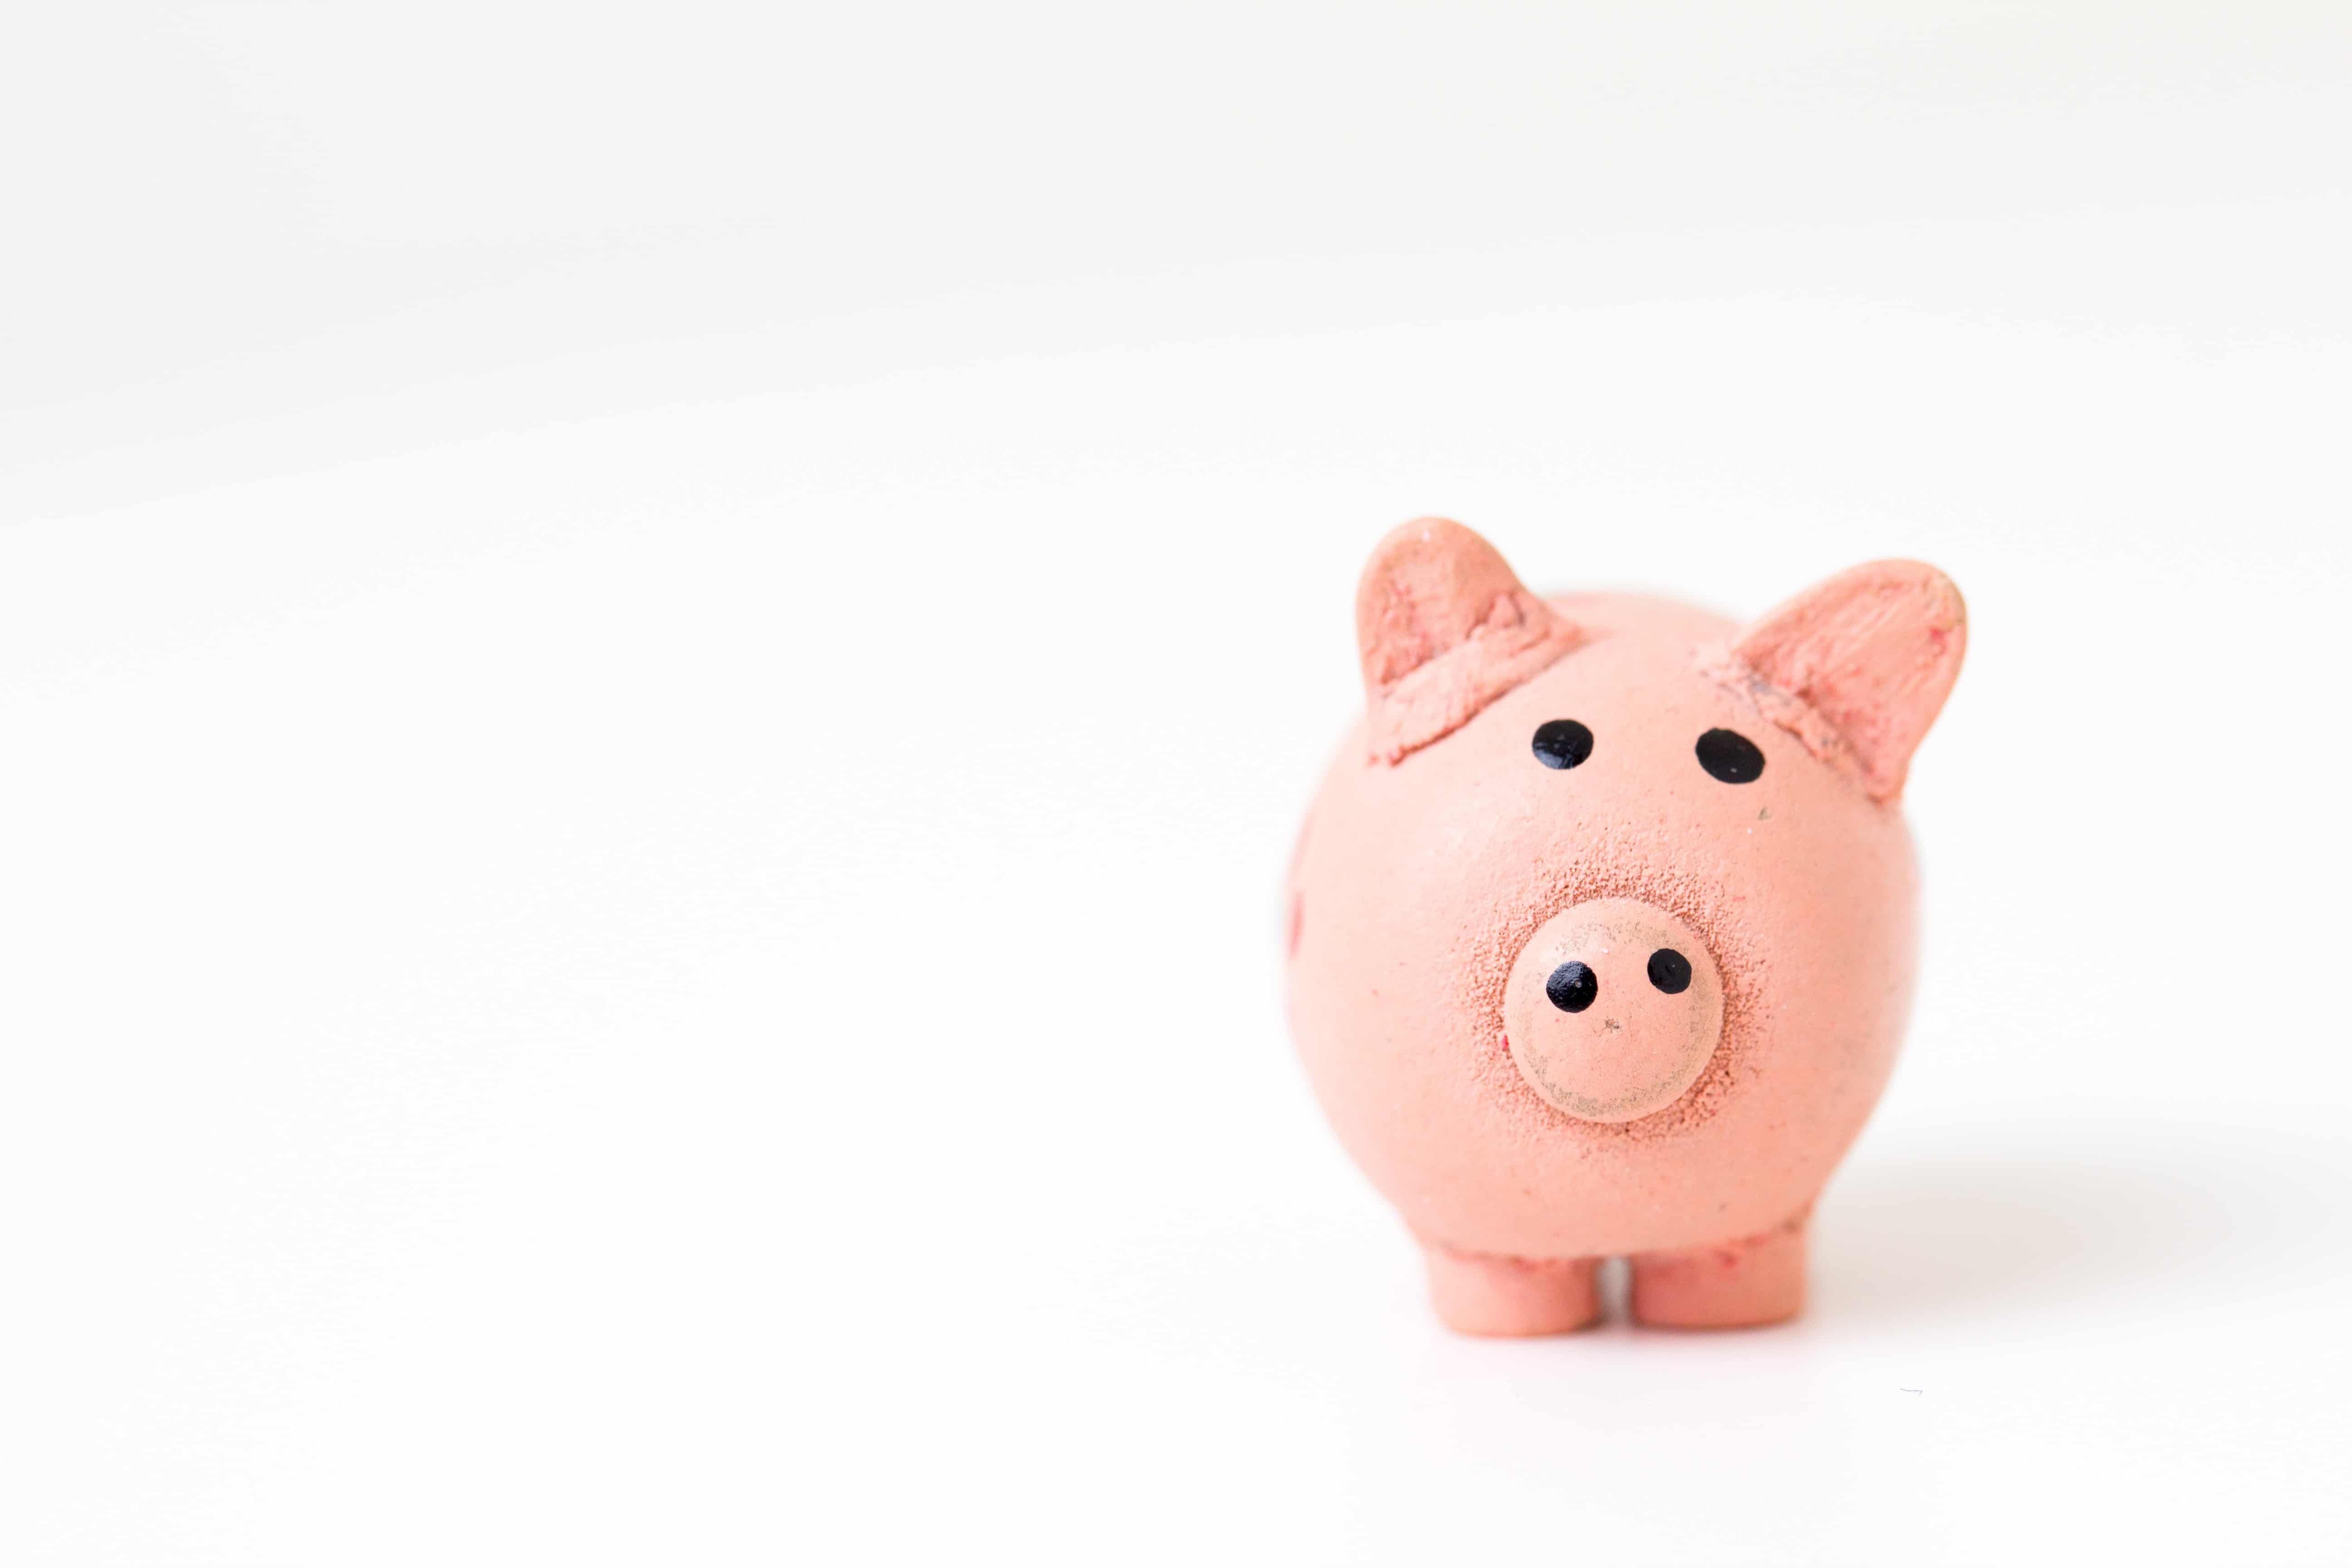 Issues with managing personal finances